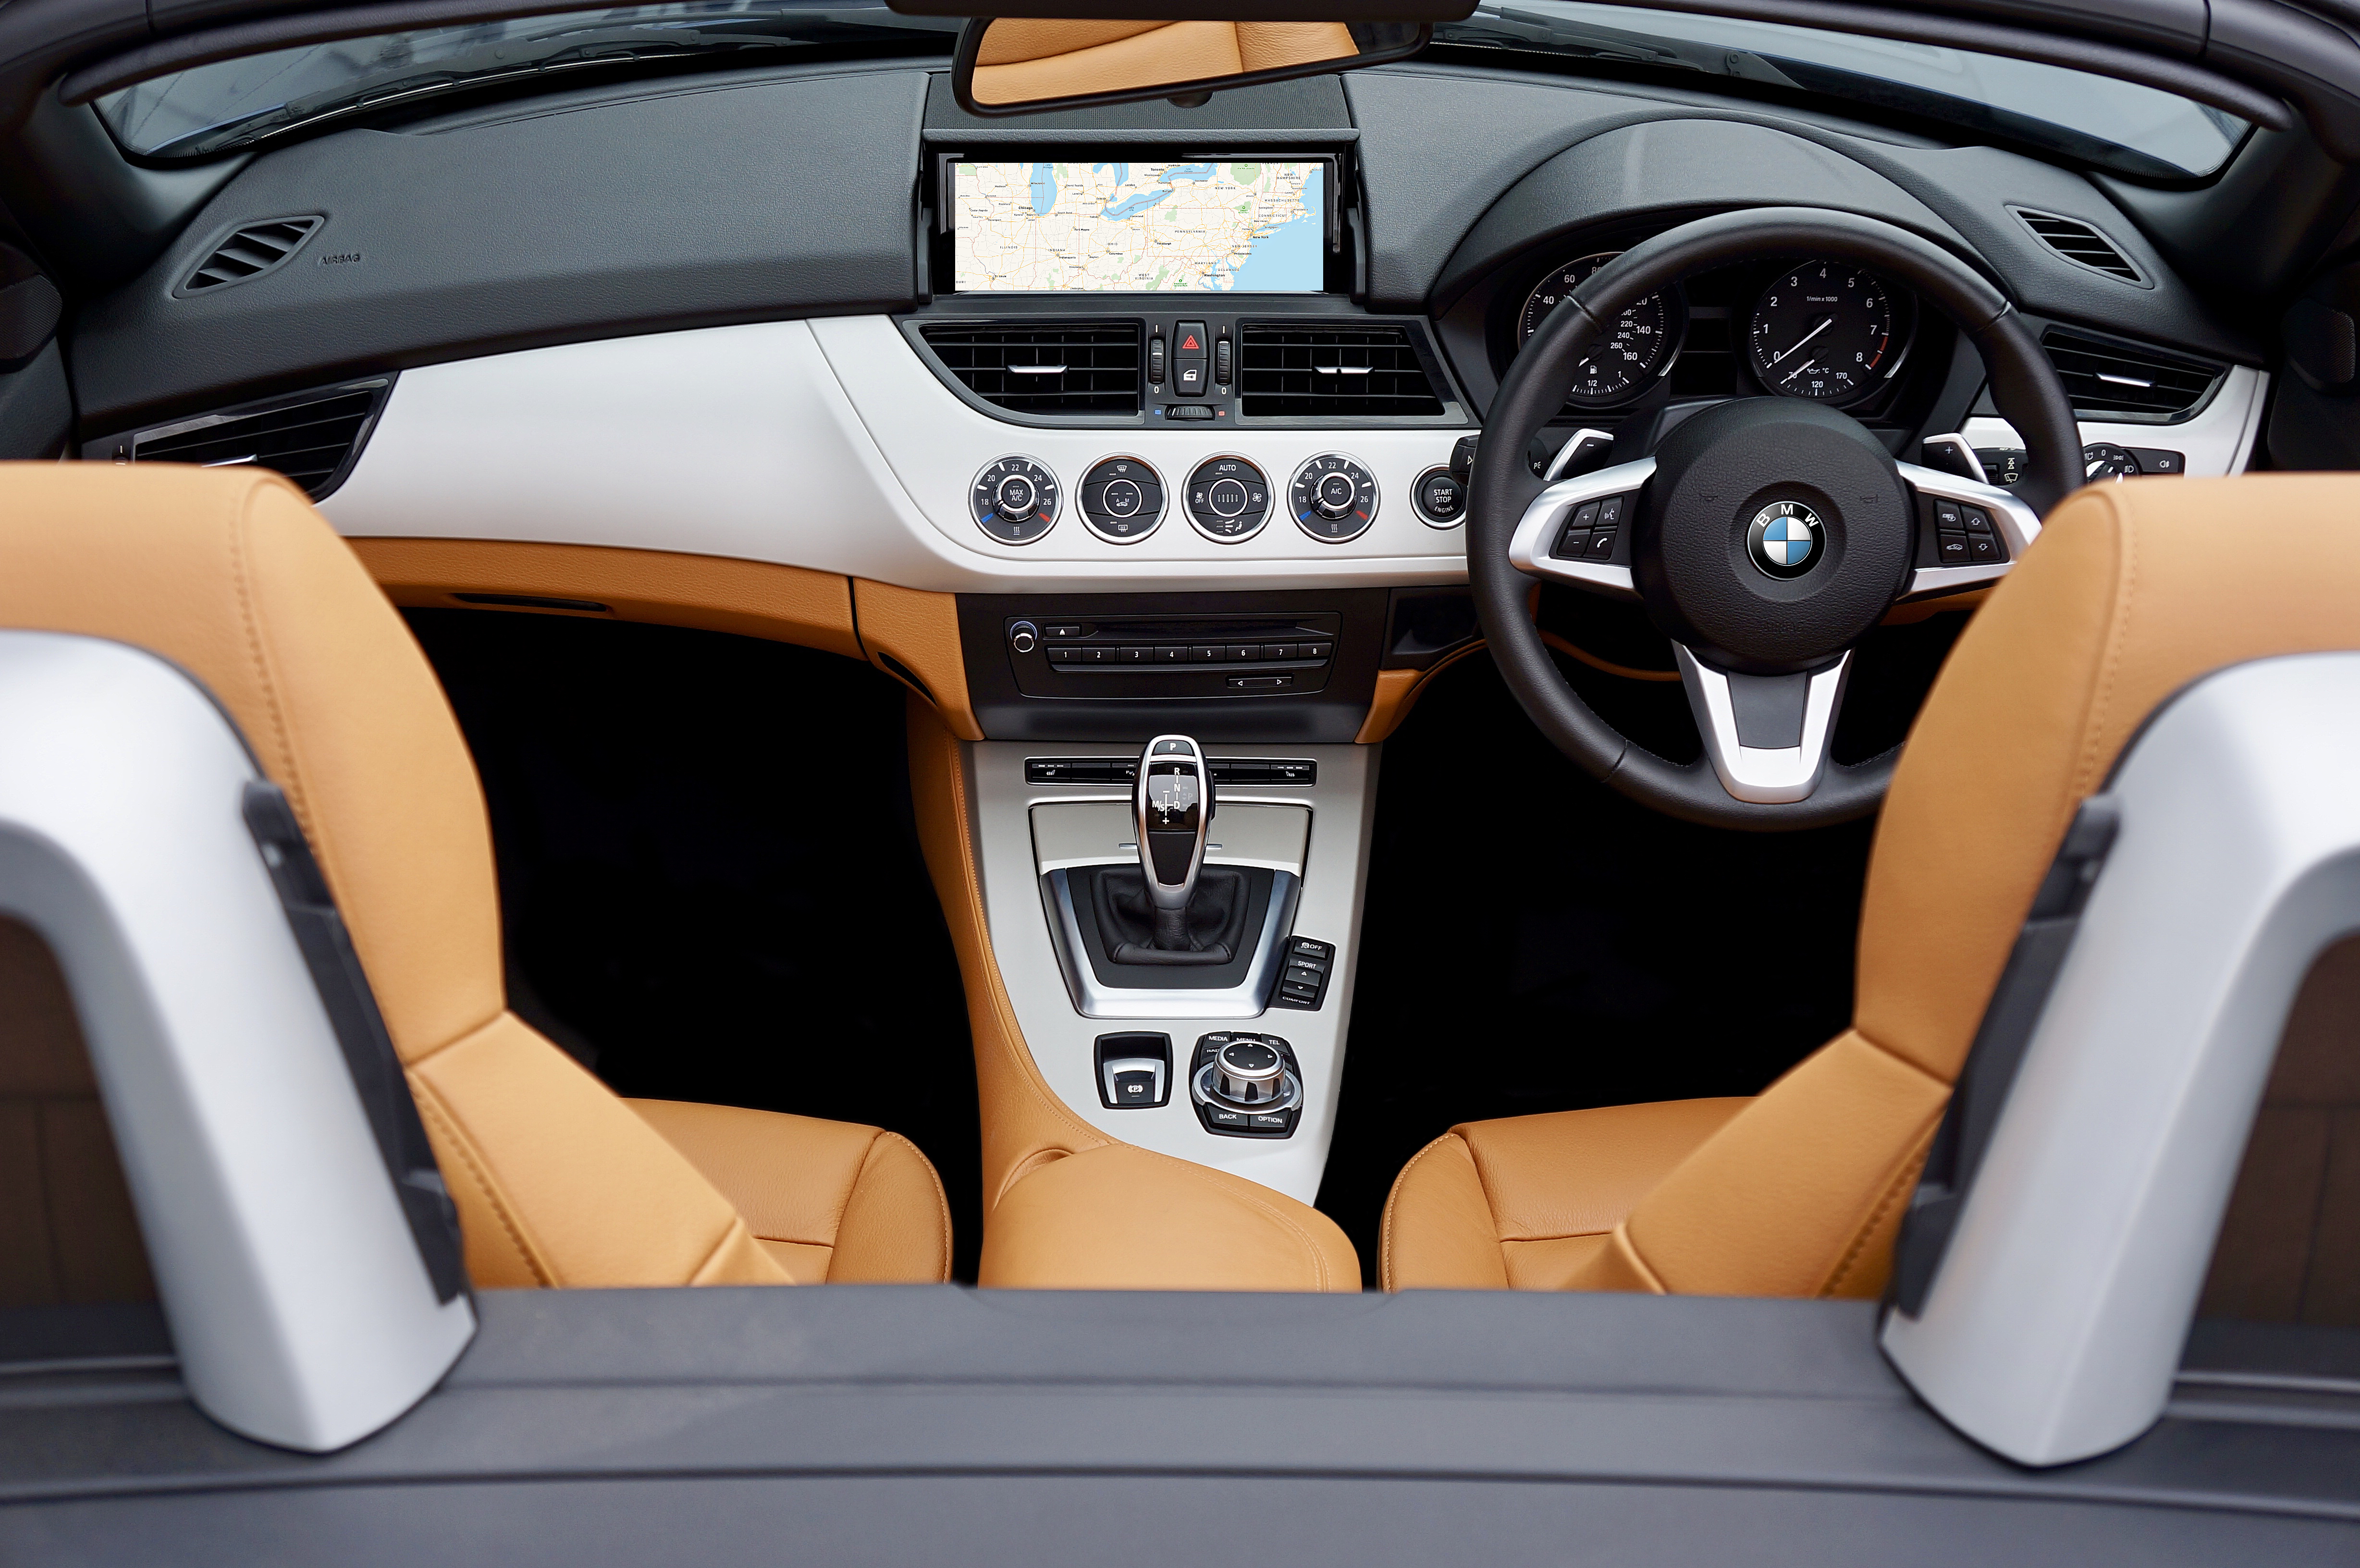 Black, Brown, and Gray Bmw Car Interior View